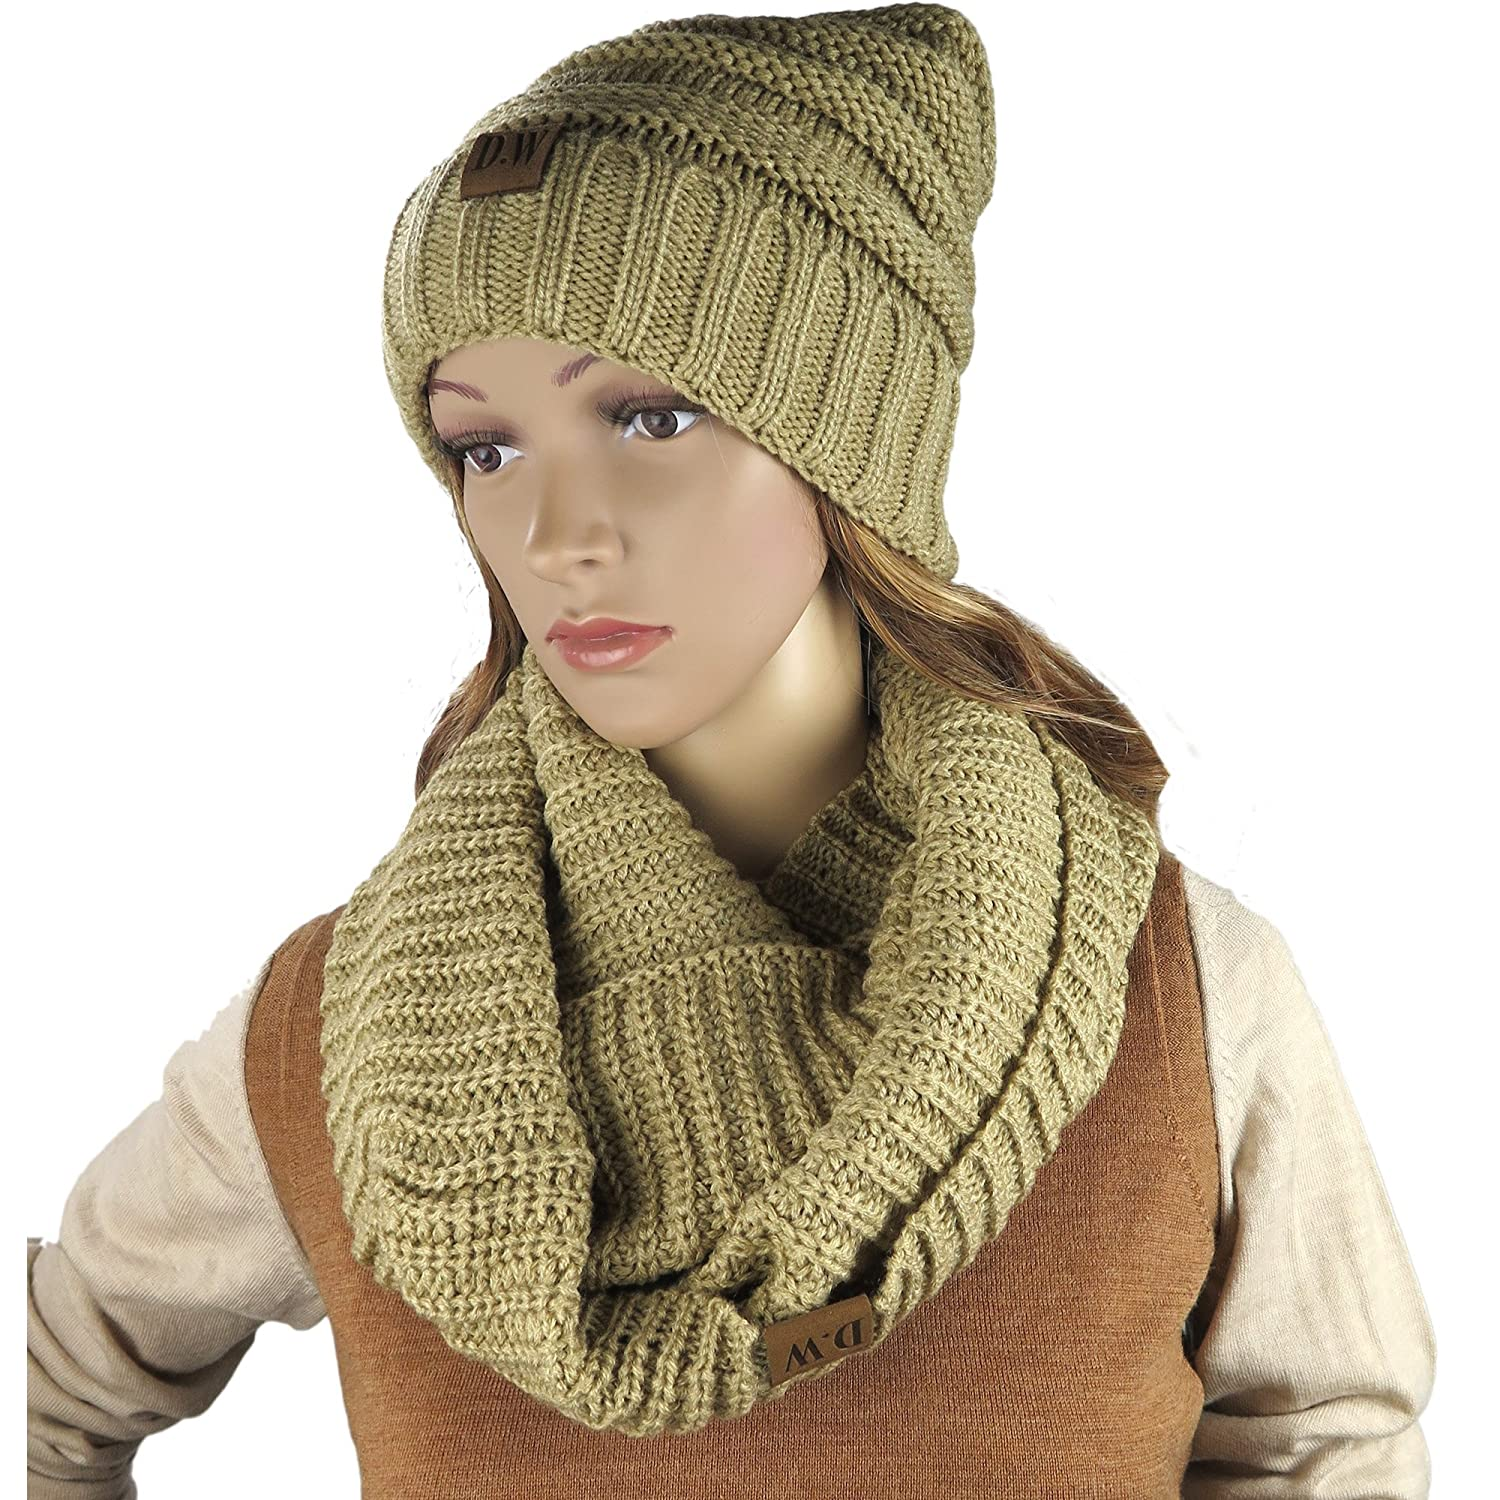 ca4983d589f72 STAY WARM AT ALL TIMES  Winter is coming and you need the right accessories  to stay warm at all times! The Debra Weitzner winter set includes the most  ...